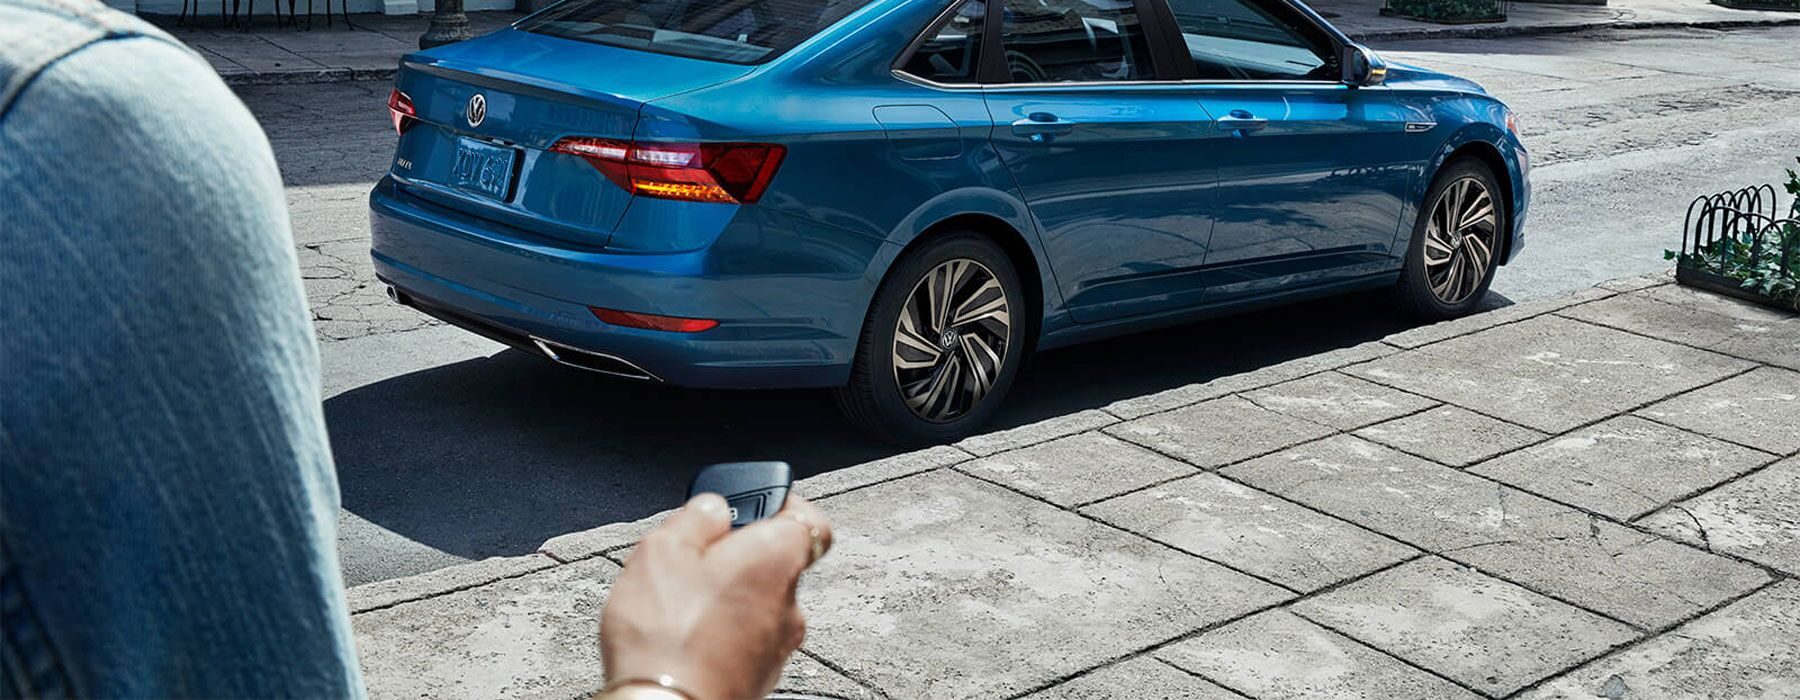 2019 Volkswagen Jetta With Hand Holding Key